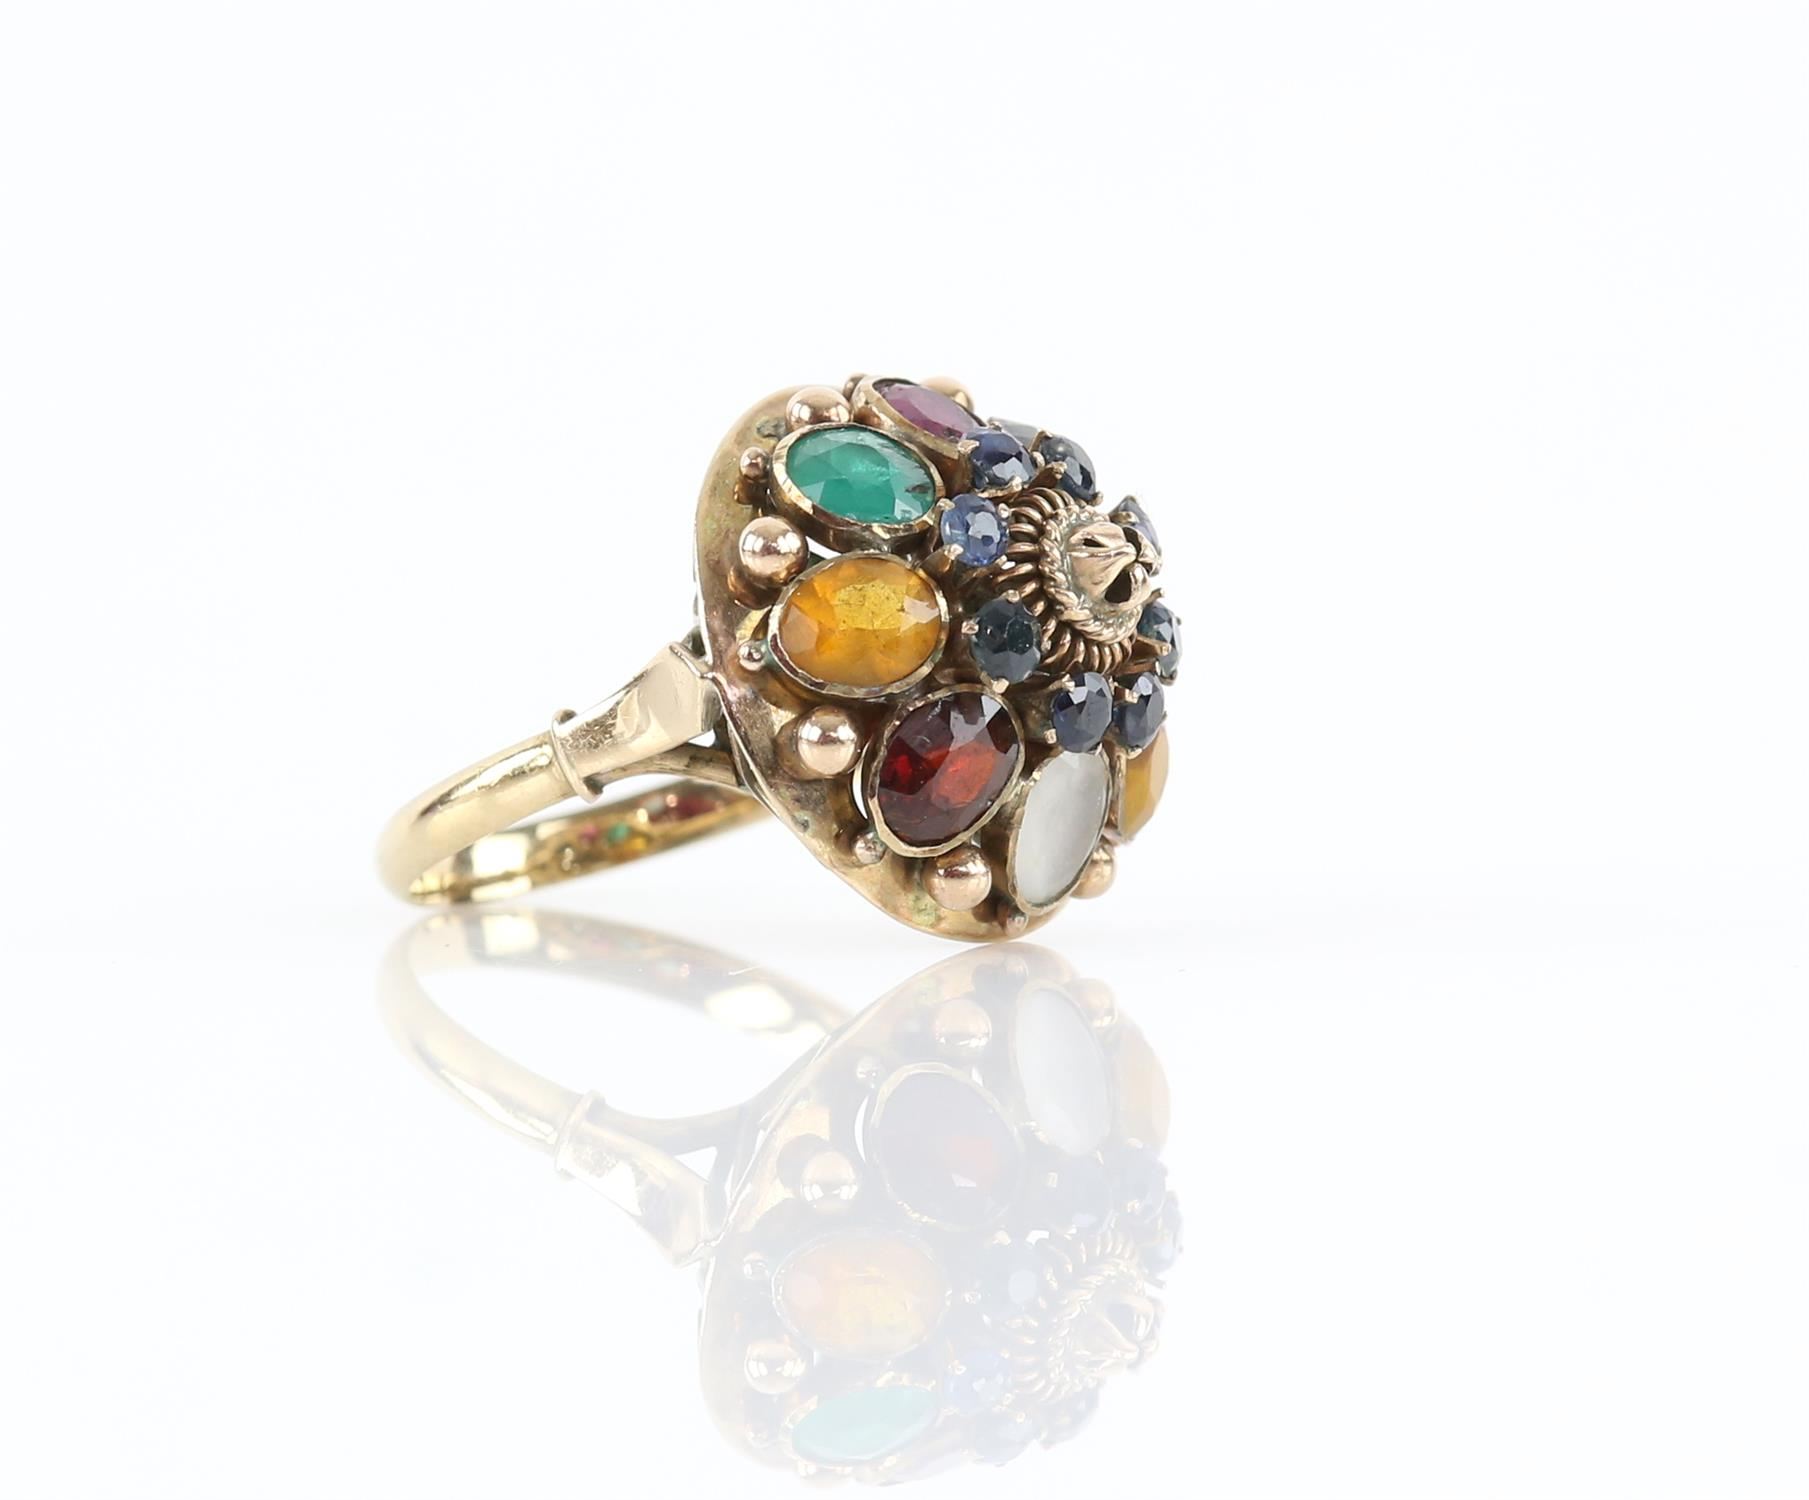 Gemstone set princess ring, set with round and oval cut sapphires, rubies, emeralds, tigers eye, - Image 2 of 3